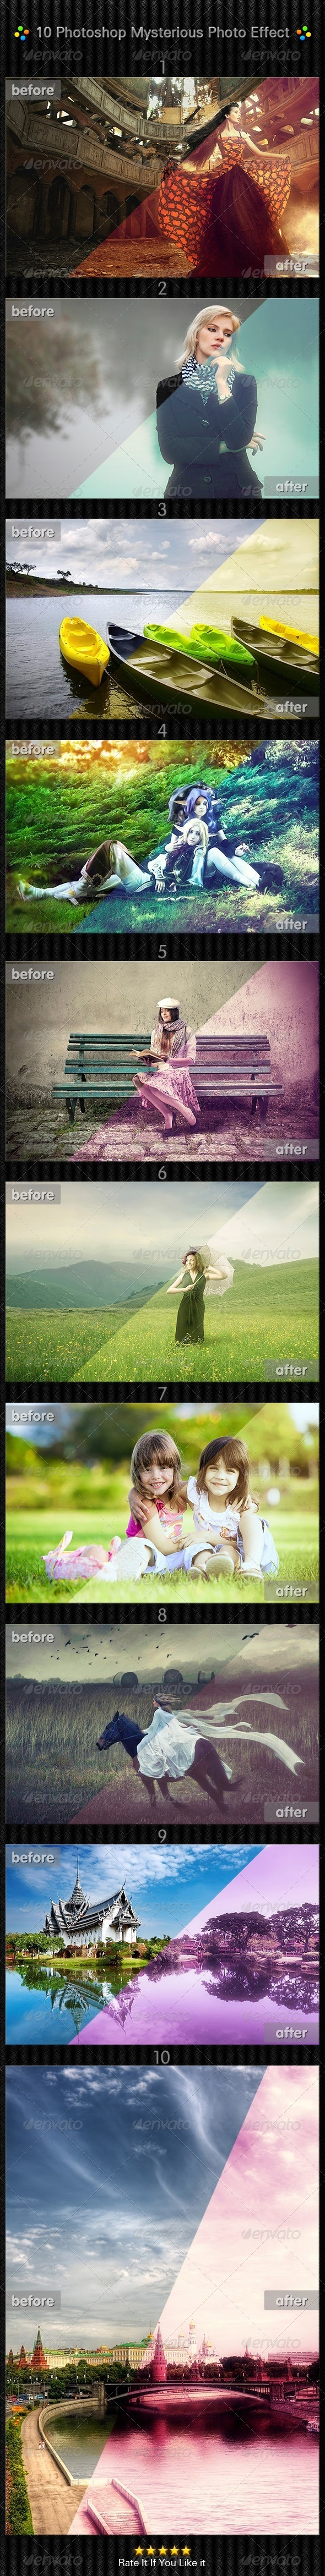 GraphicRiver 10 Photoshop Mysterious Photo Effect 7641952